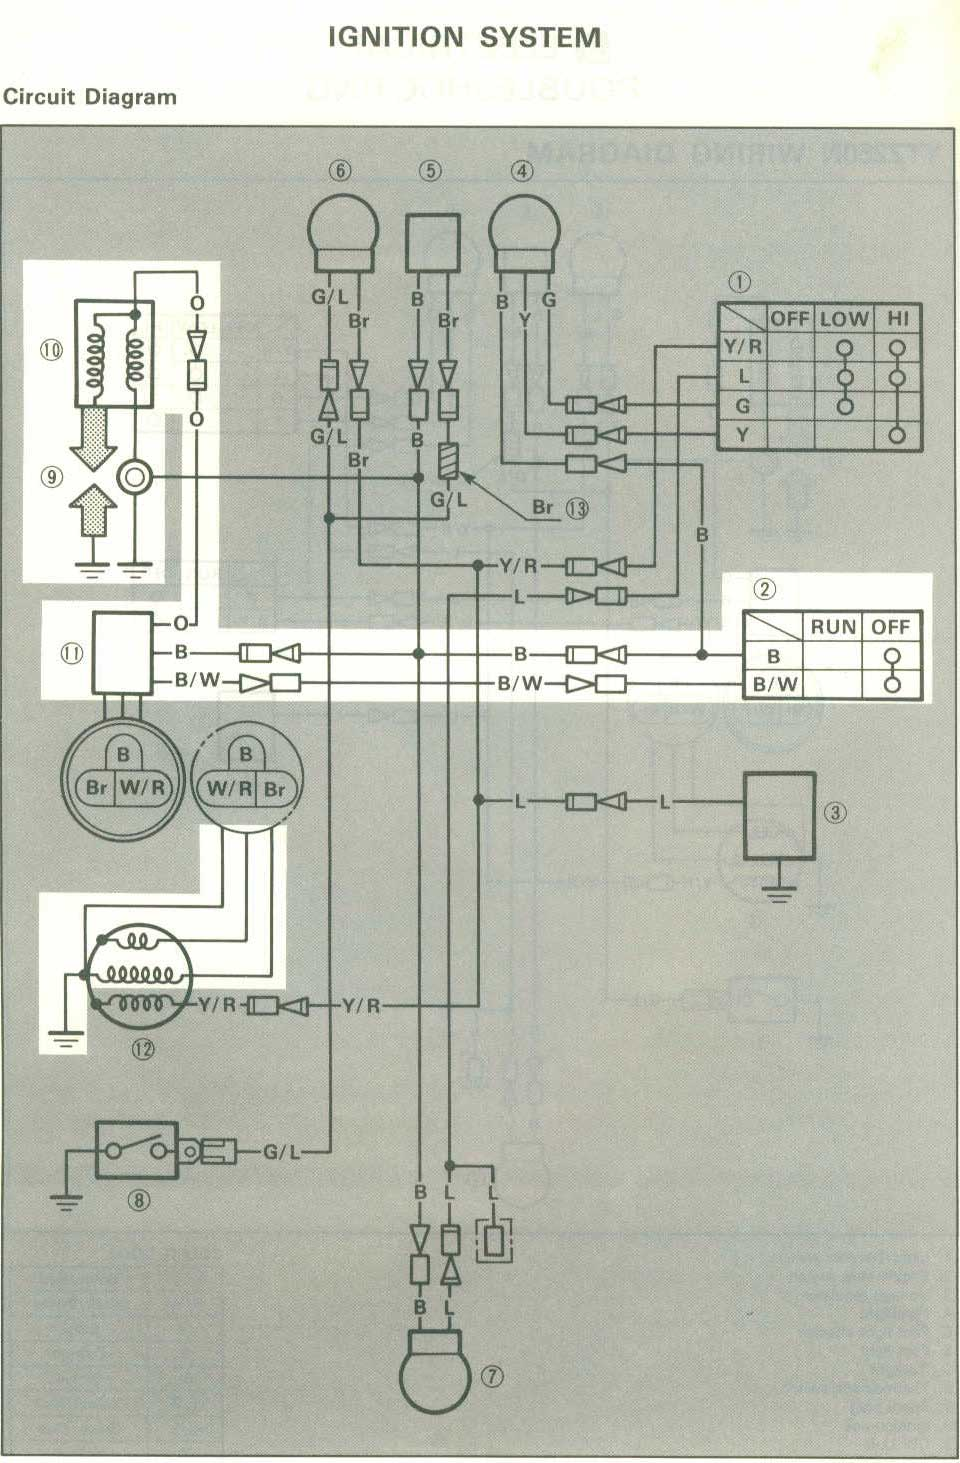 [DIAGRAM_5UK]  1B5 Wiring Diagram For Yamaha Ytm 225dx | Wiring Resources | Wiring Diagram For Yahama Ytm 225dx |  | Wiring Resources